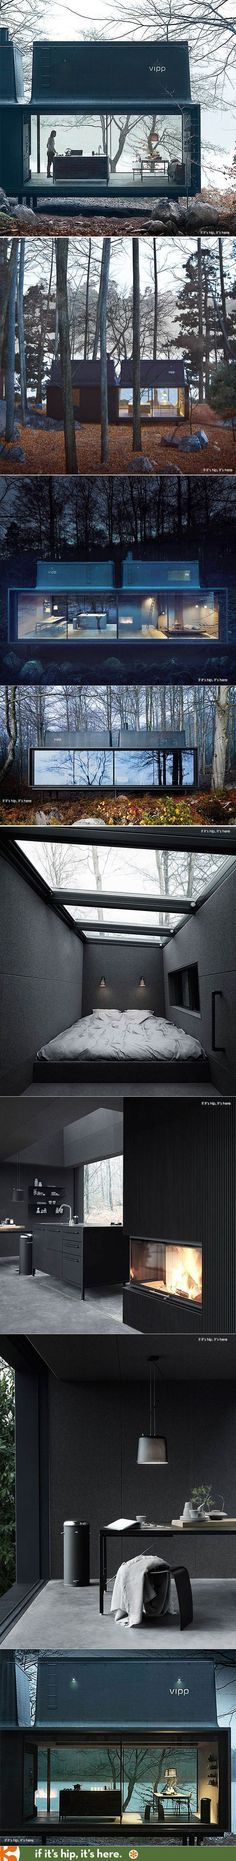 The Vipp Shelter is a prefab structure loaded with Vipp products.   http://www.ifitshipitshere.com/the-vipp-shelter/: